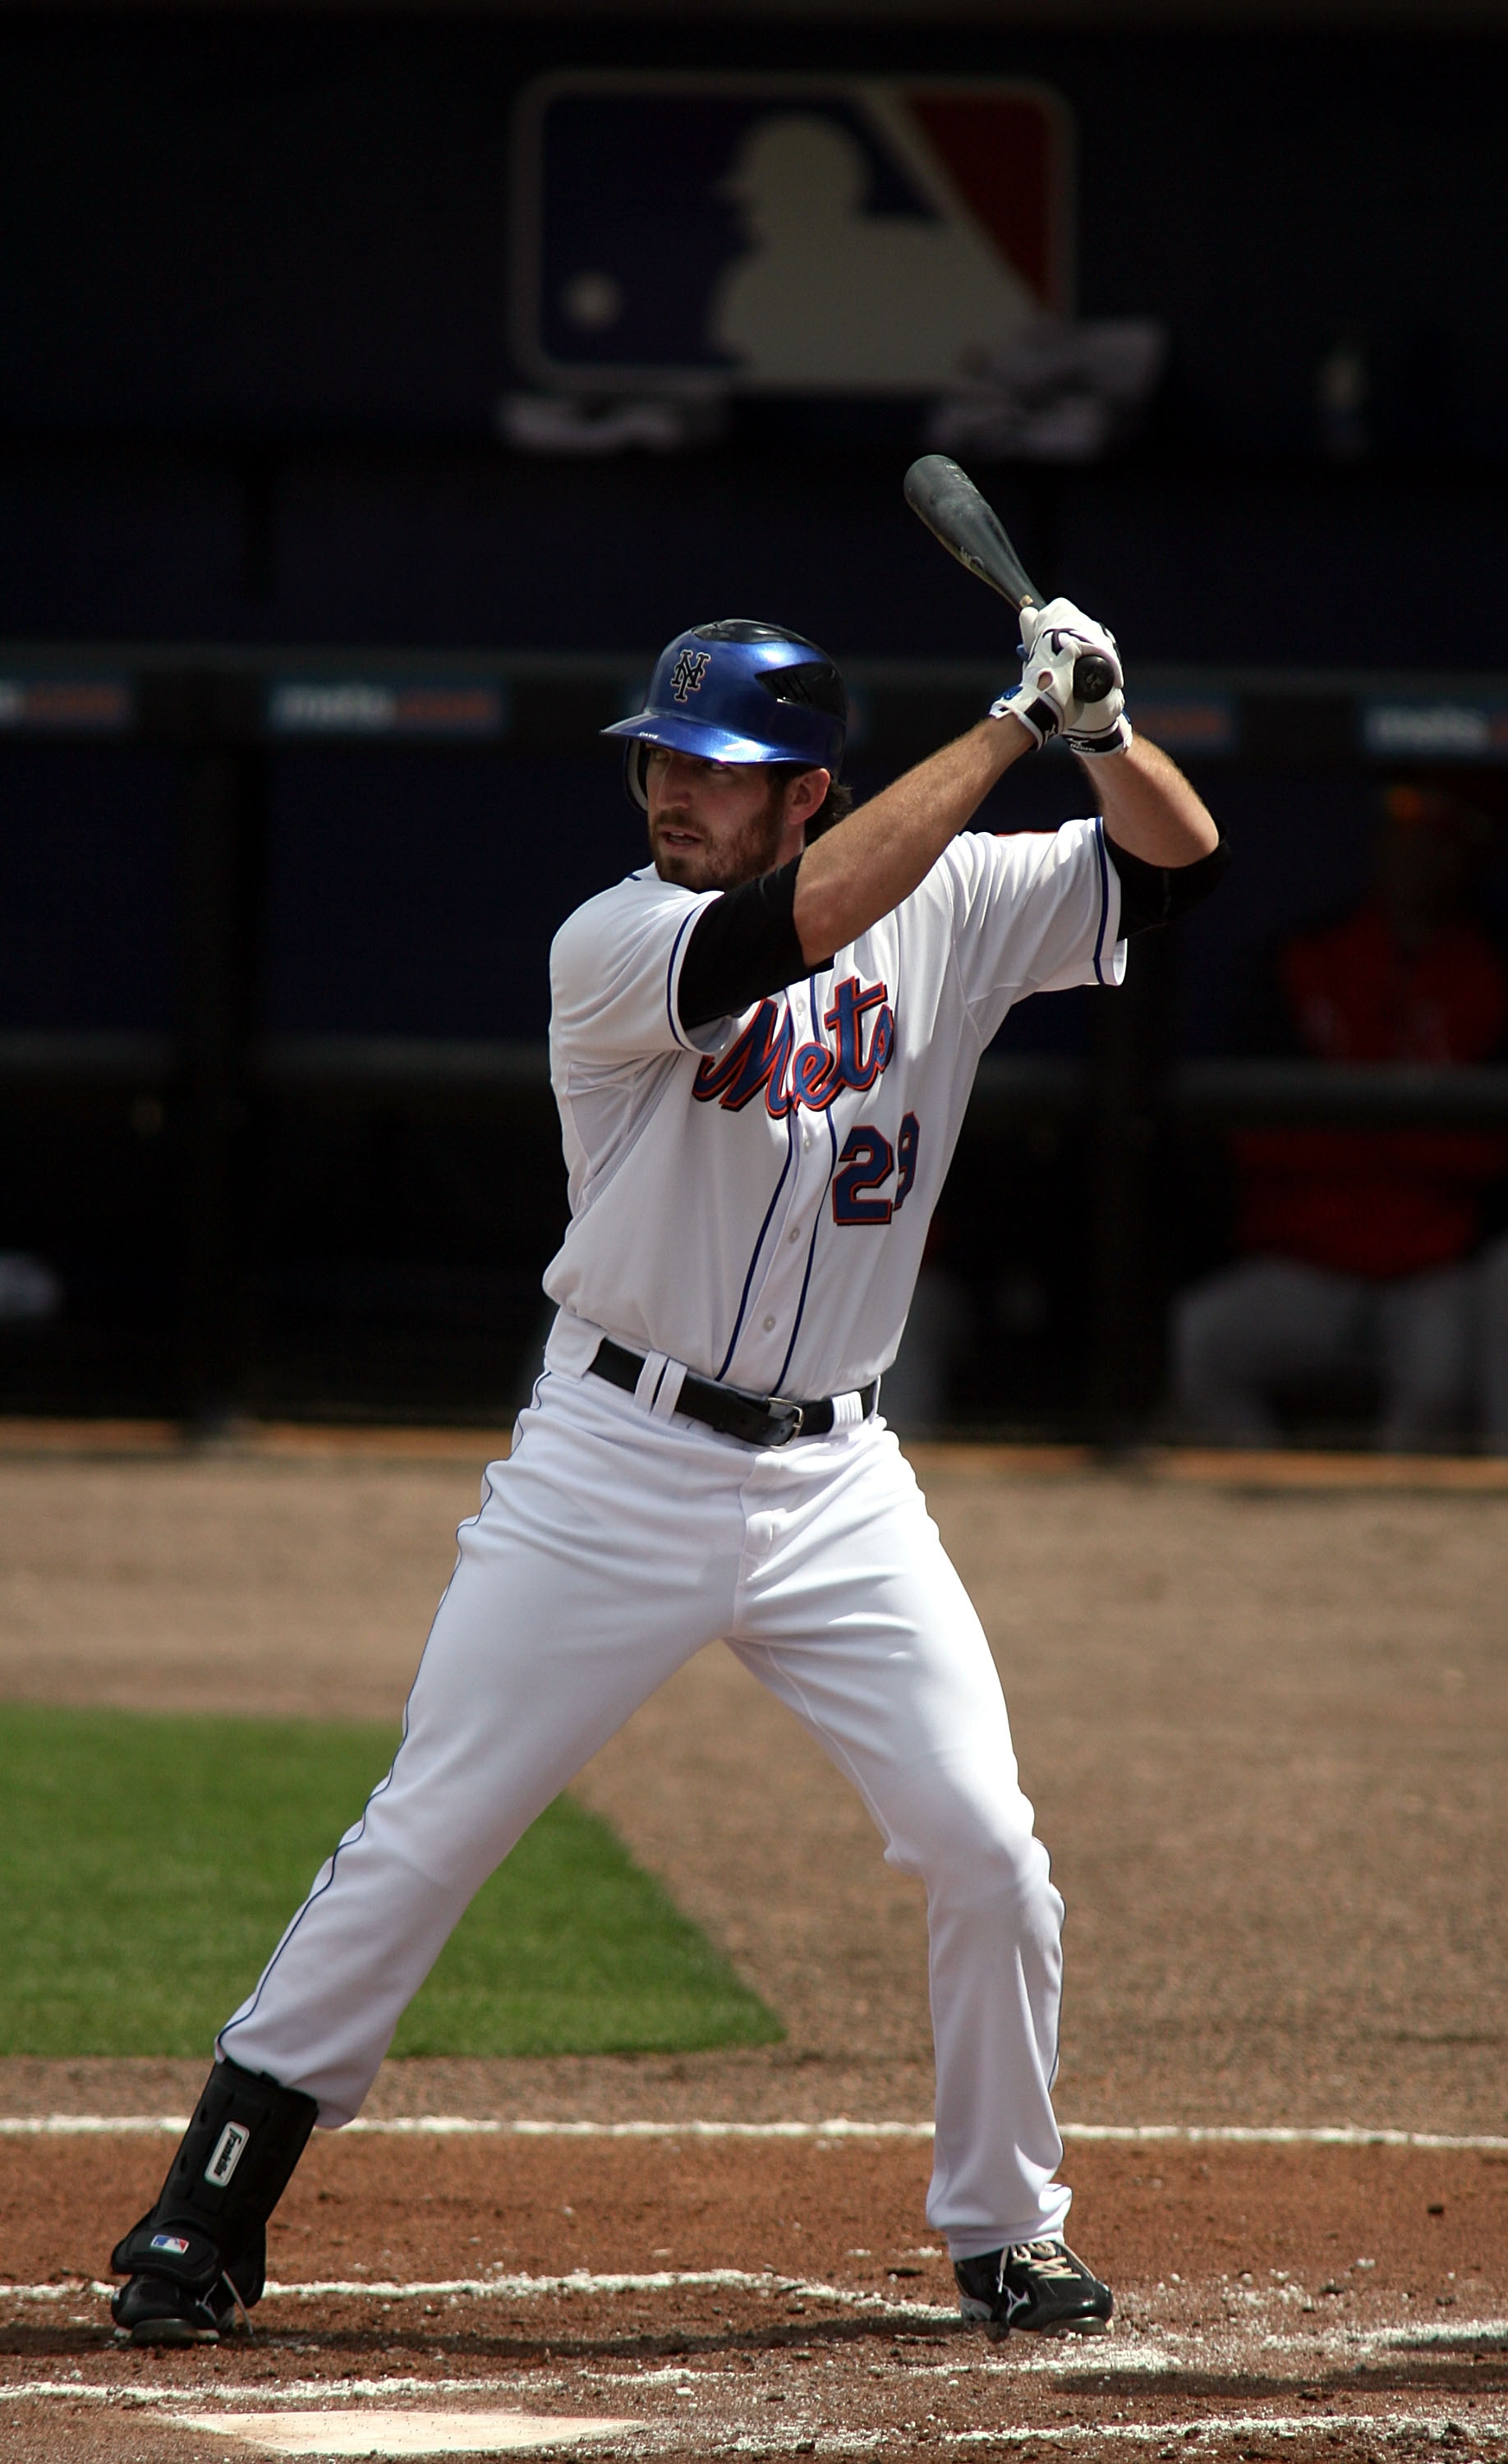 Ike Davis finished among the top 10 in the National League Rookie of the Year voting in 2010.